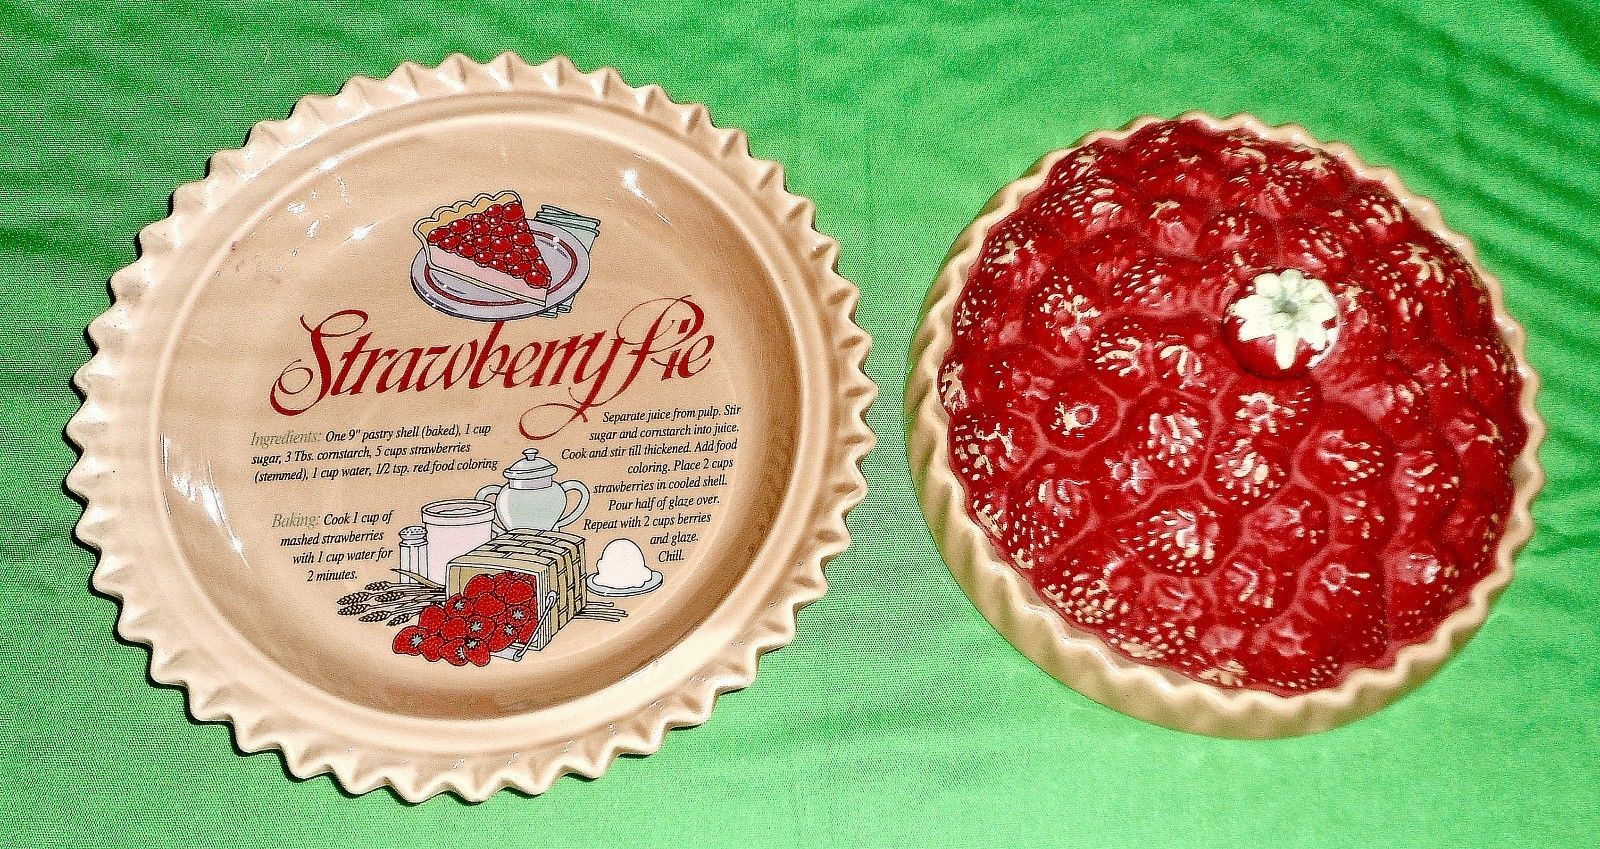 9  Strawberry Pie Plate with Decorative Lid | eBay & 9